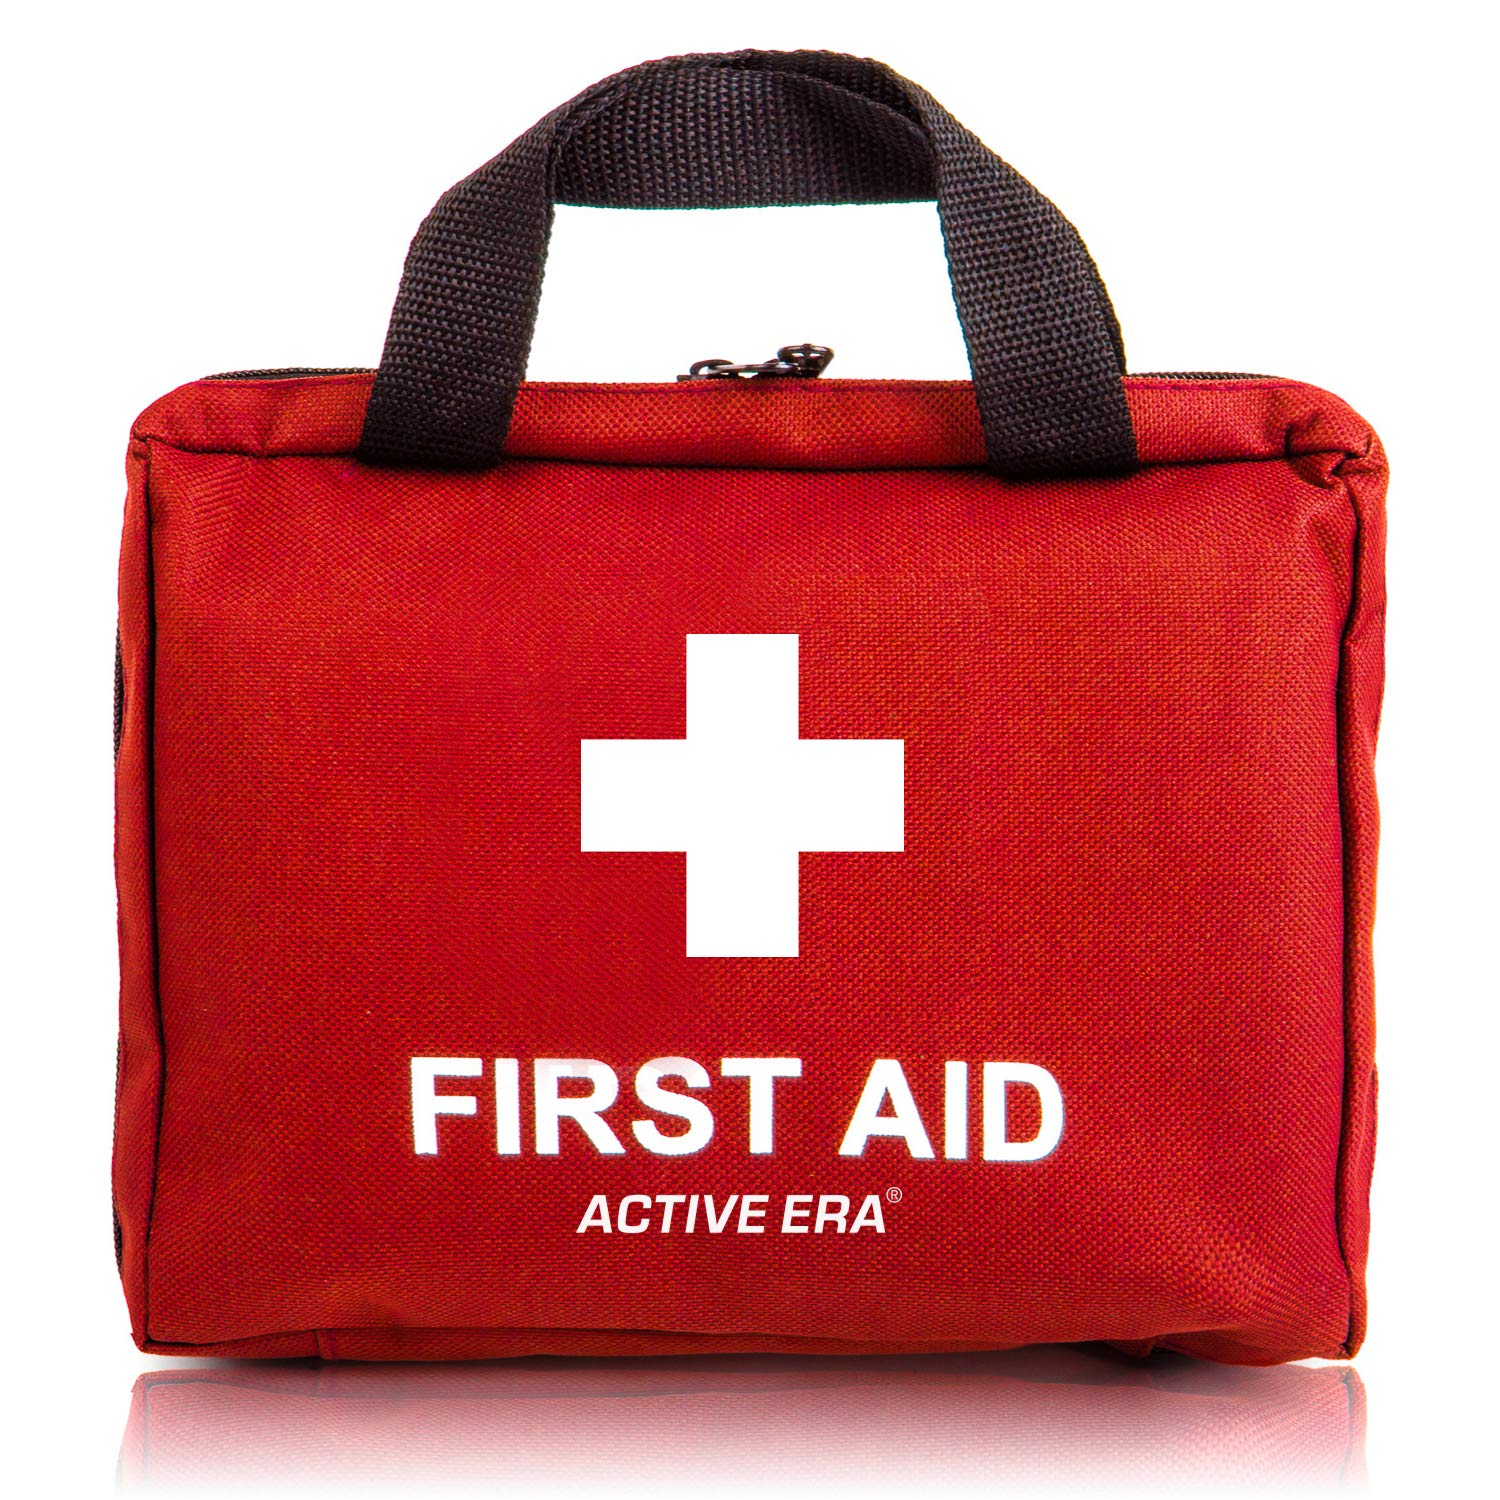 90 Pieces First Aid Kit - All-Purpose with Premium Medical Supplies and Soft Case for Home, Office, Business, Car, Camping and Travel by Active Era